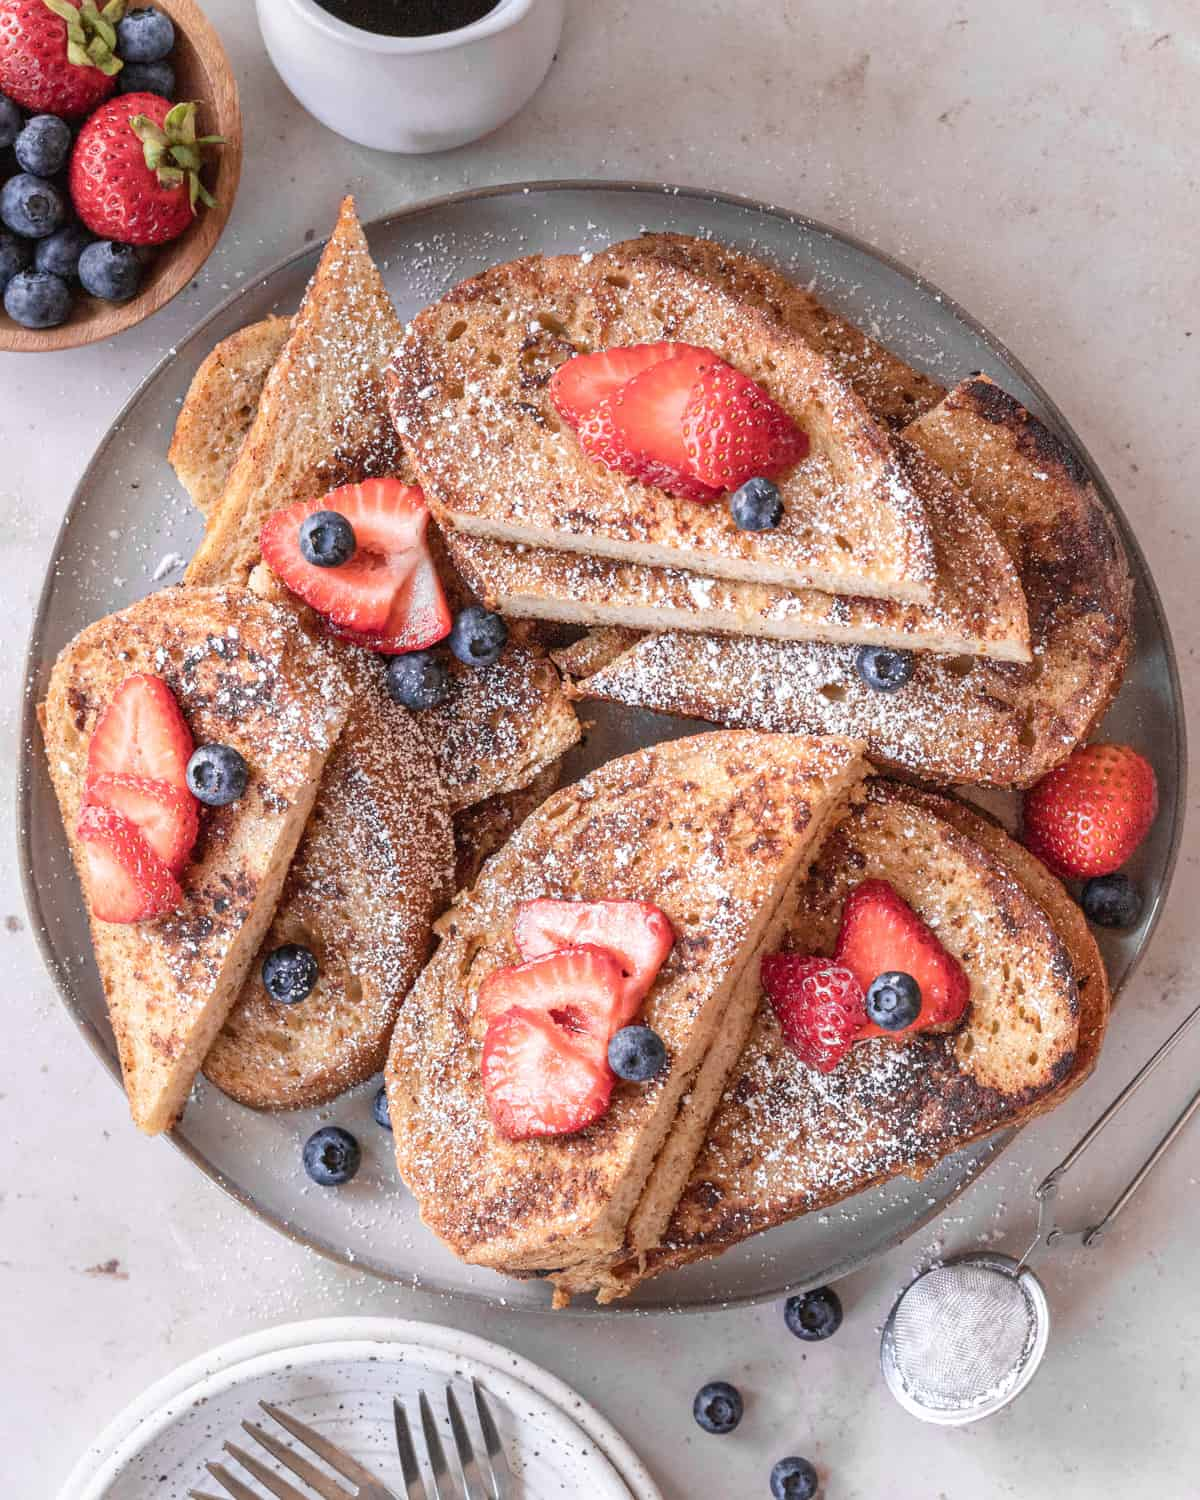 overhead shot of french toast slices on a round serving platter with berries and powdered sugar on top.